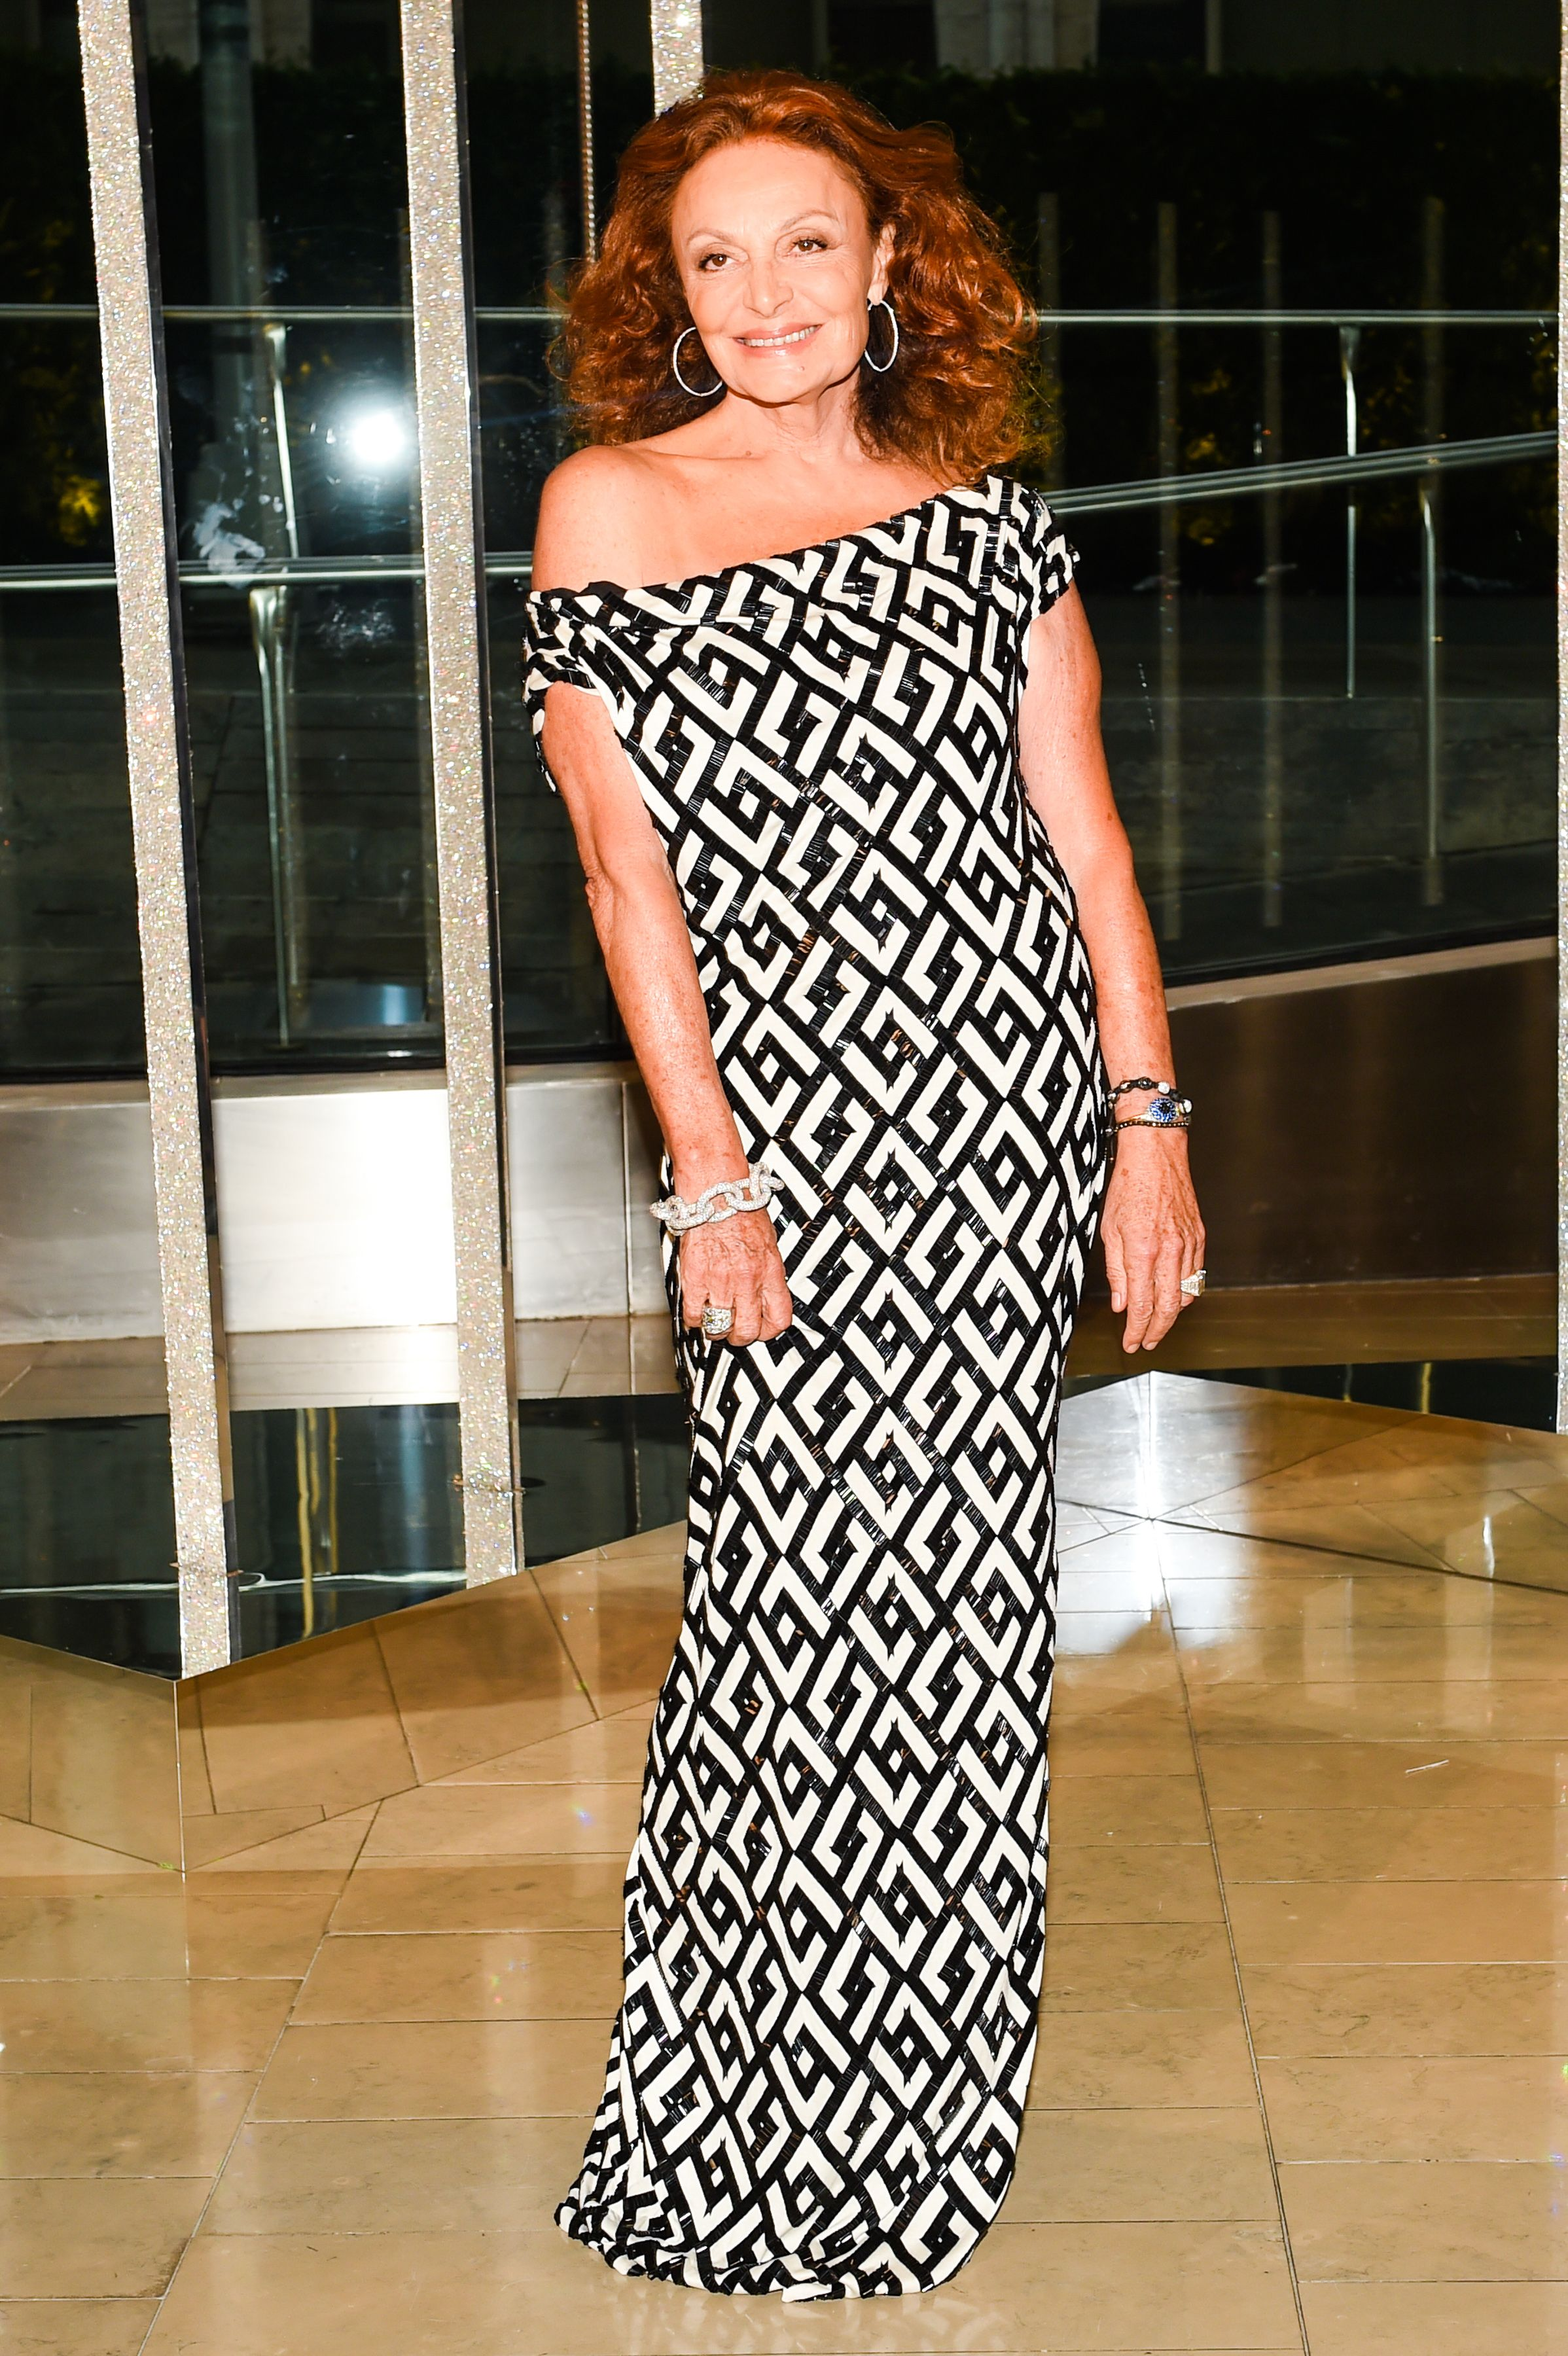 Diane in a custom DVF gown at the 2015 CFDA Awards http://on.dvf.com ...